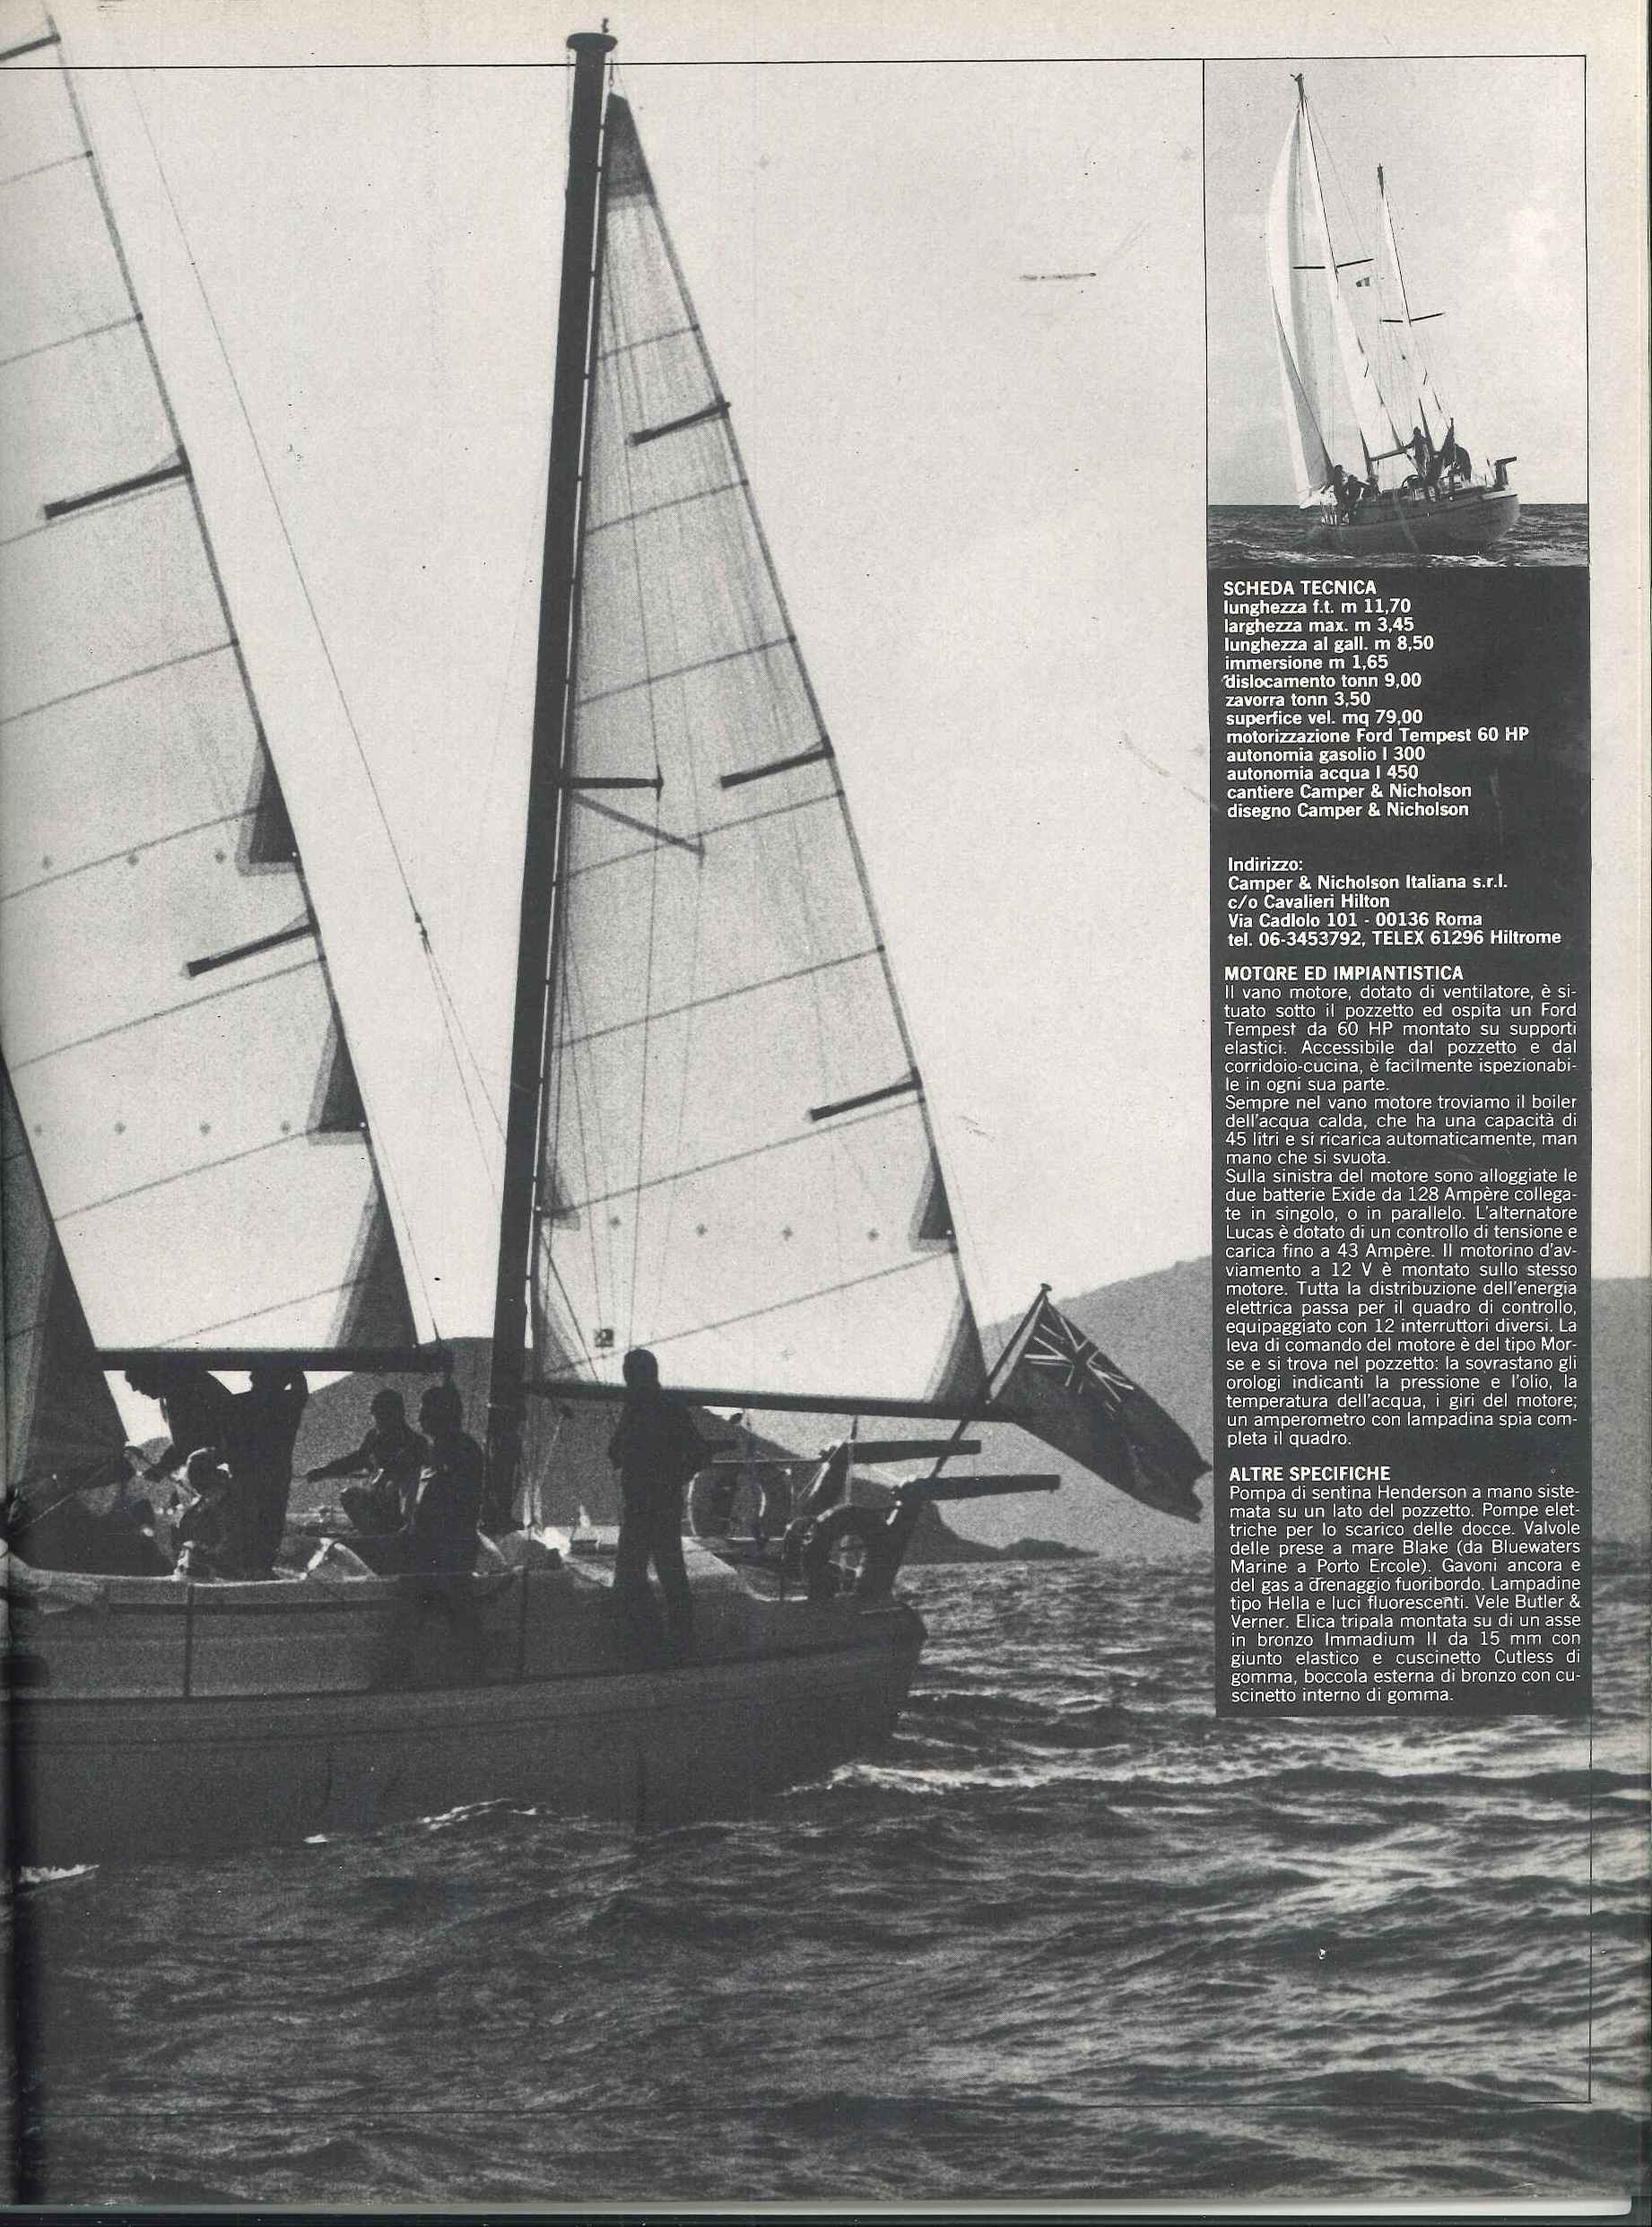 1977 02 PRESS NICHOLSON 39' UOMO MARE N°19 (2).jpg